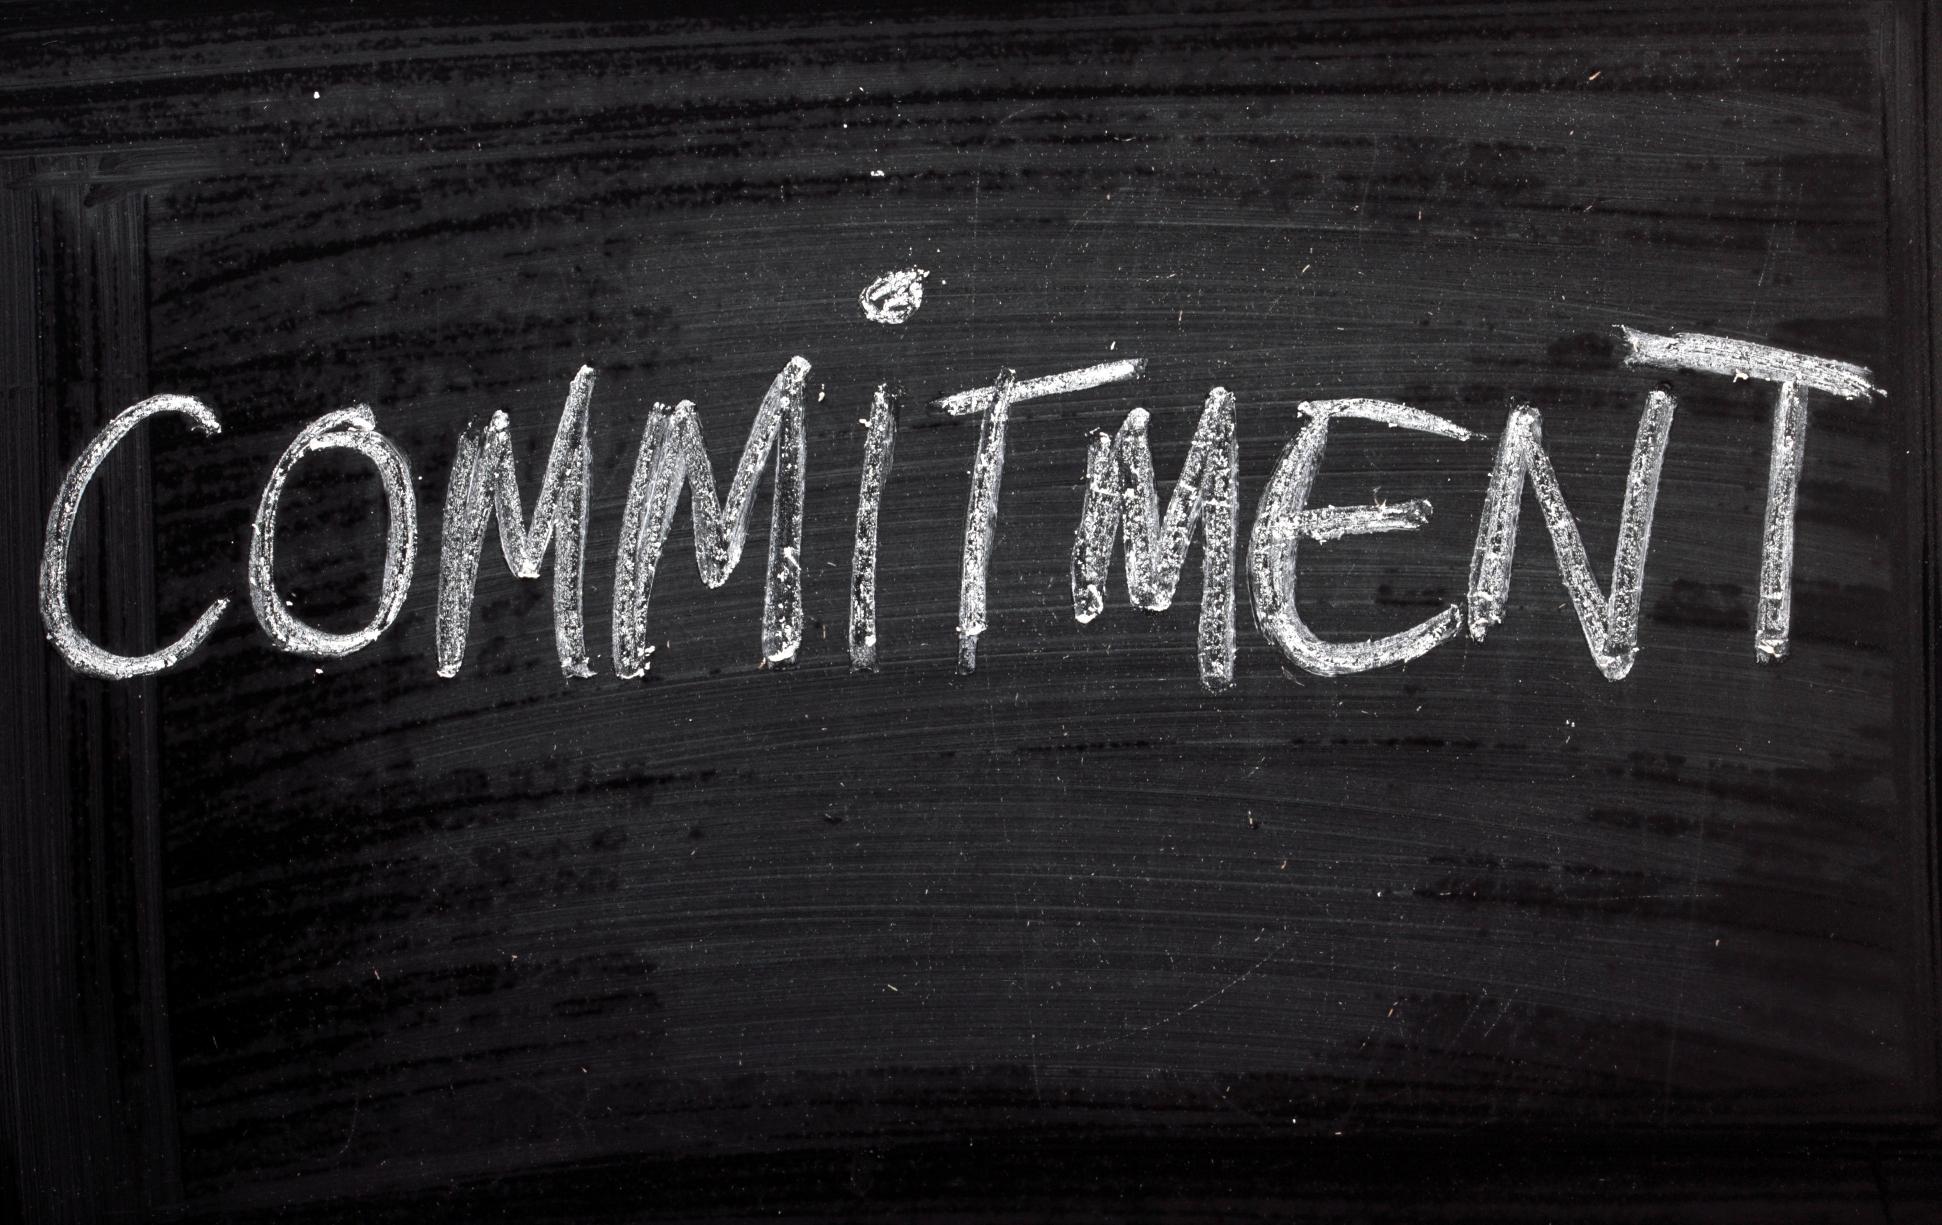 Commitment in recovery